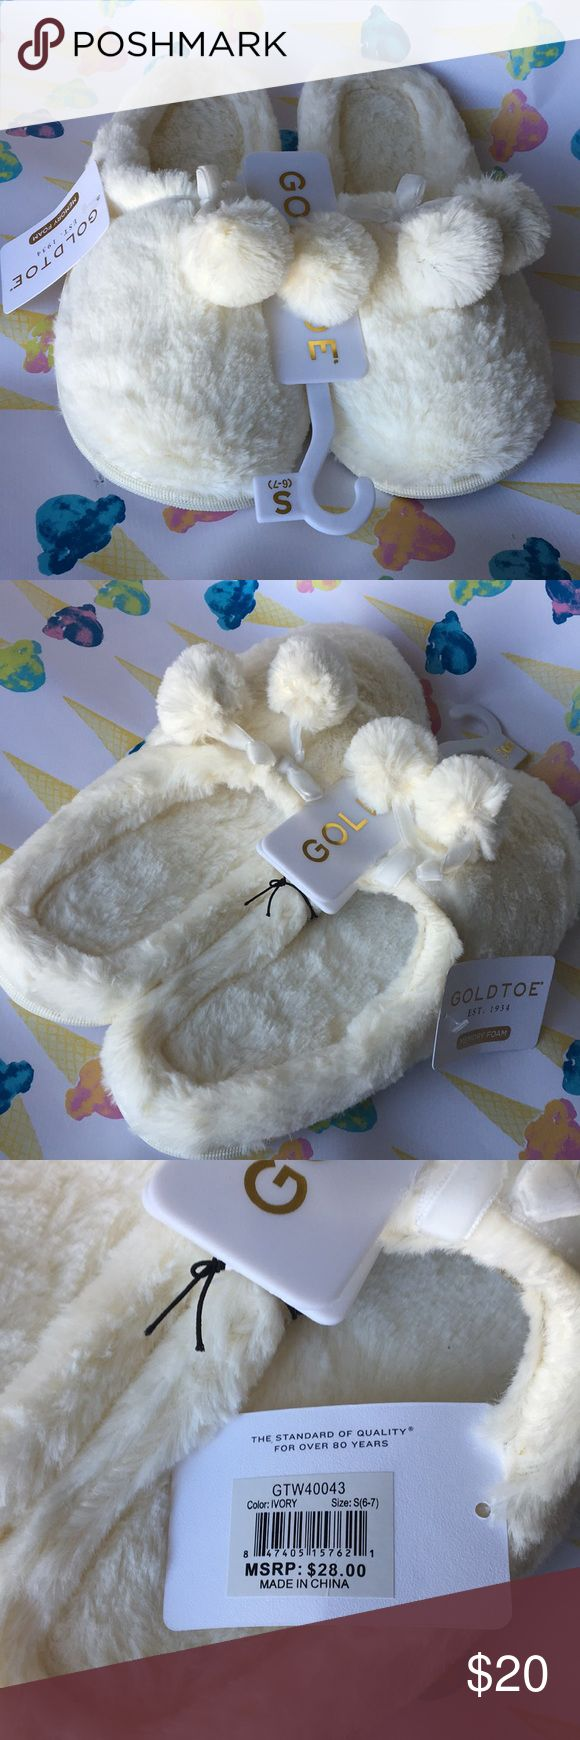 🍦Gold Toe NWT cream puff pompom slippers S,M,XL🍦 These are truly the perfect slippers. Gold Toe brand memory foam, Ivory-colored faux fur with Pompoms. Where's my coffee and French toast? Small (6-7) Medium (8) Large (10-11)  All man-made materials. 💛 these. Gold Toe Shoes Slippers